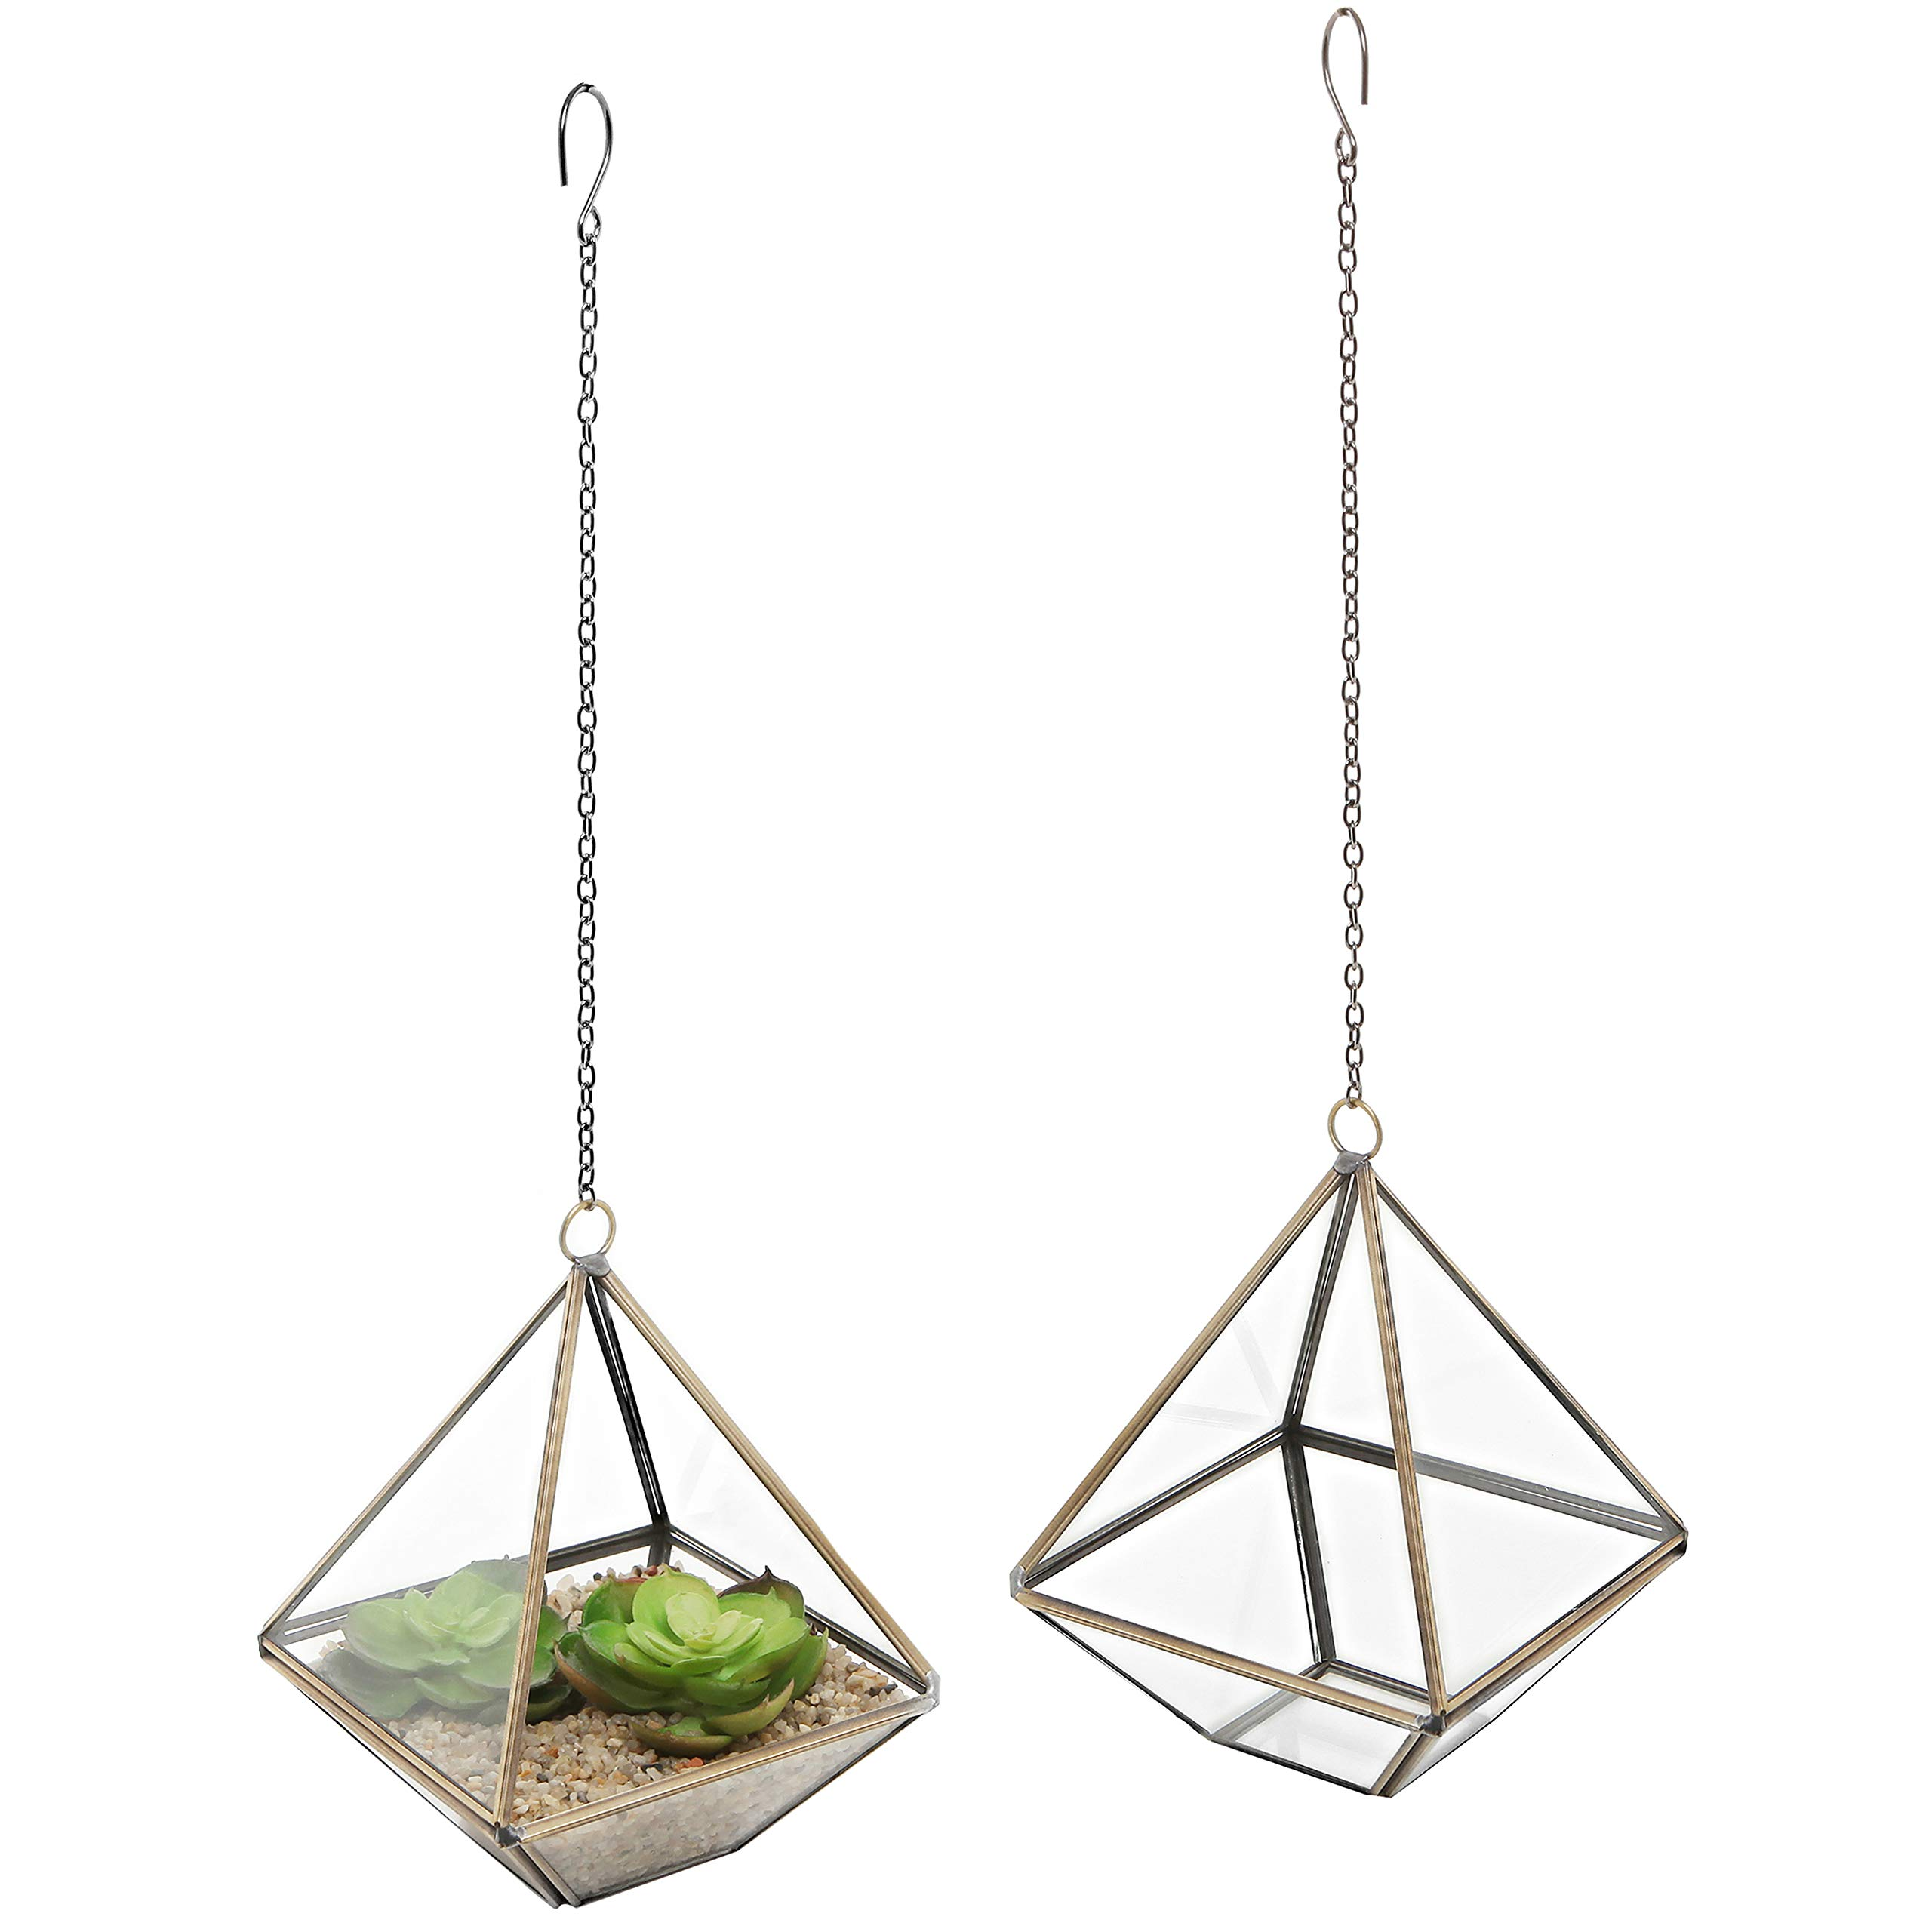 MyGift 5-Inch Hanging Glass & Metal Frame Pyramid Terrarium Planter, Set of 2 by MyGift